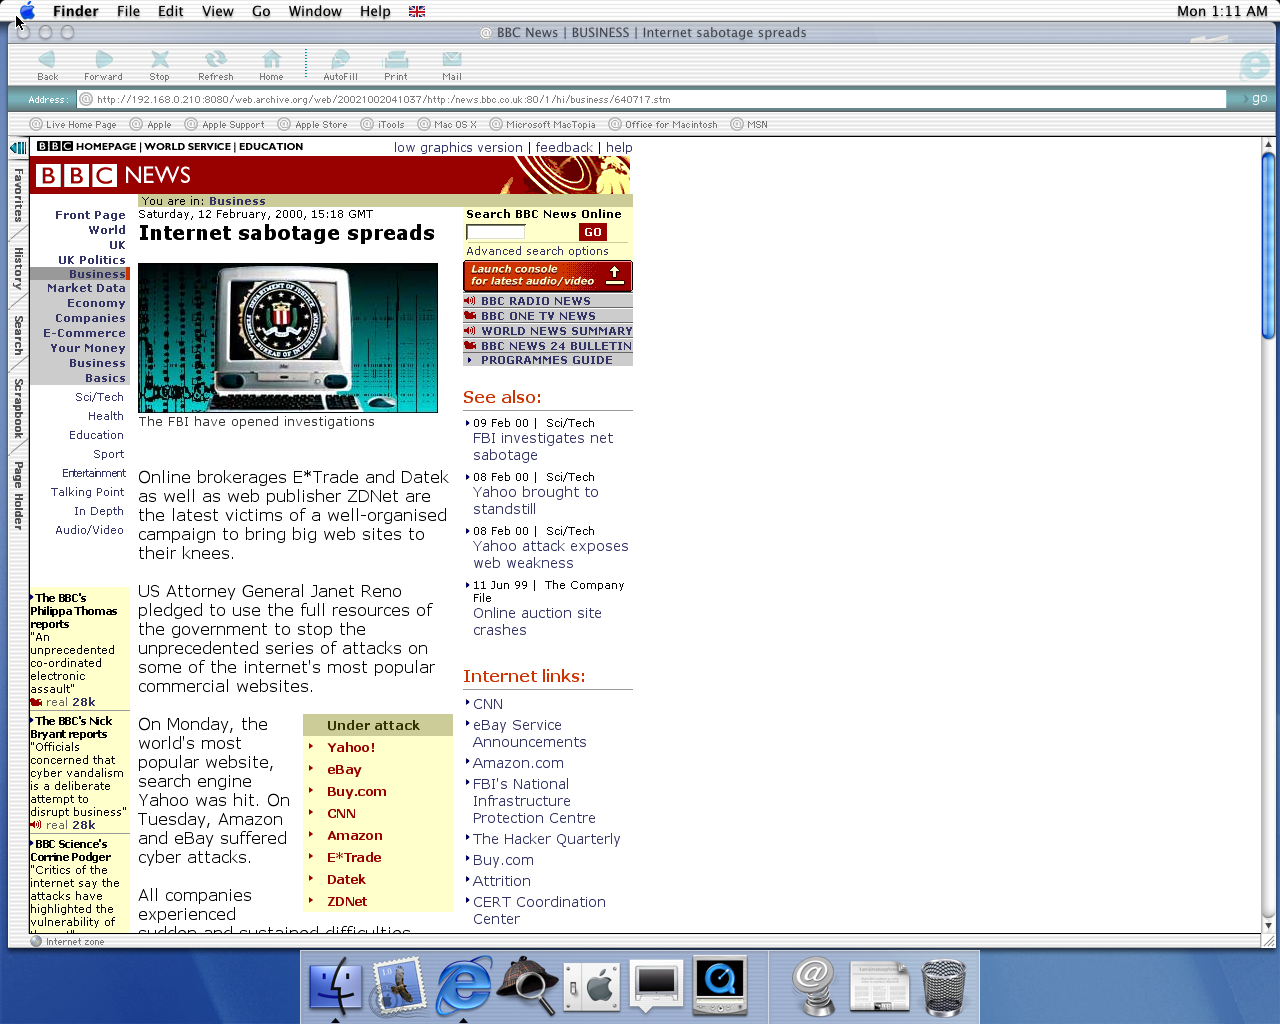 OS X 10.0 PPC with Microsoft Internet Explorer 5.1 for Mac Preview displaying a page from BBC News archived at October 02, 2002 at 04:10:37